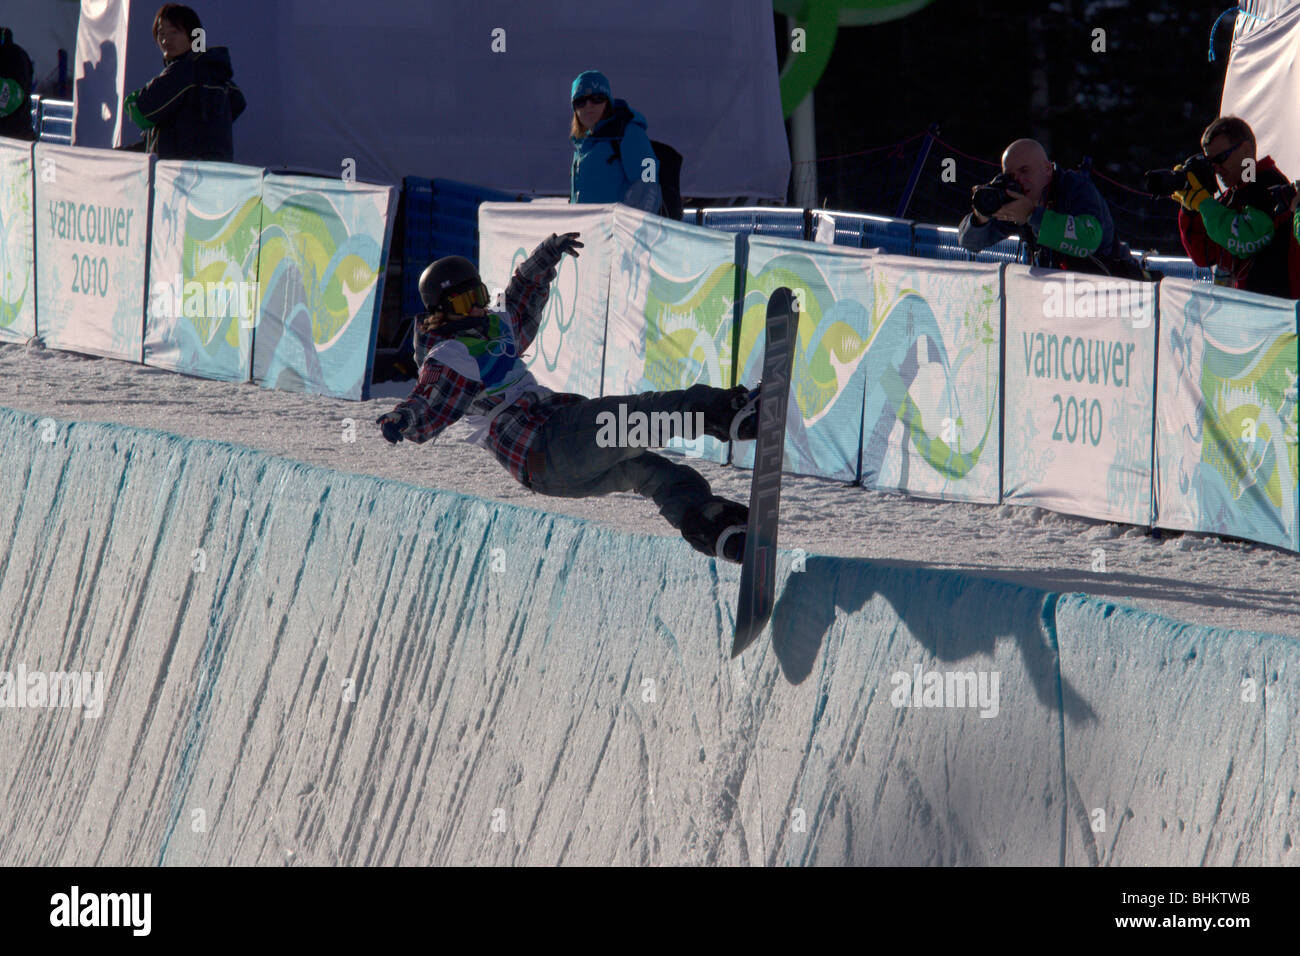 Louie Vito (USA) competing in the Men's Snowboard Halfpipe event at the 2010 Olympic Winter Games - Stock Image